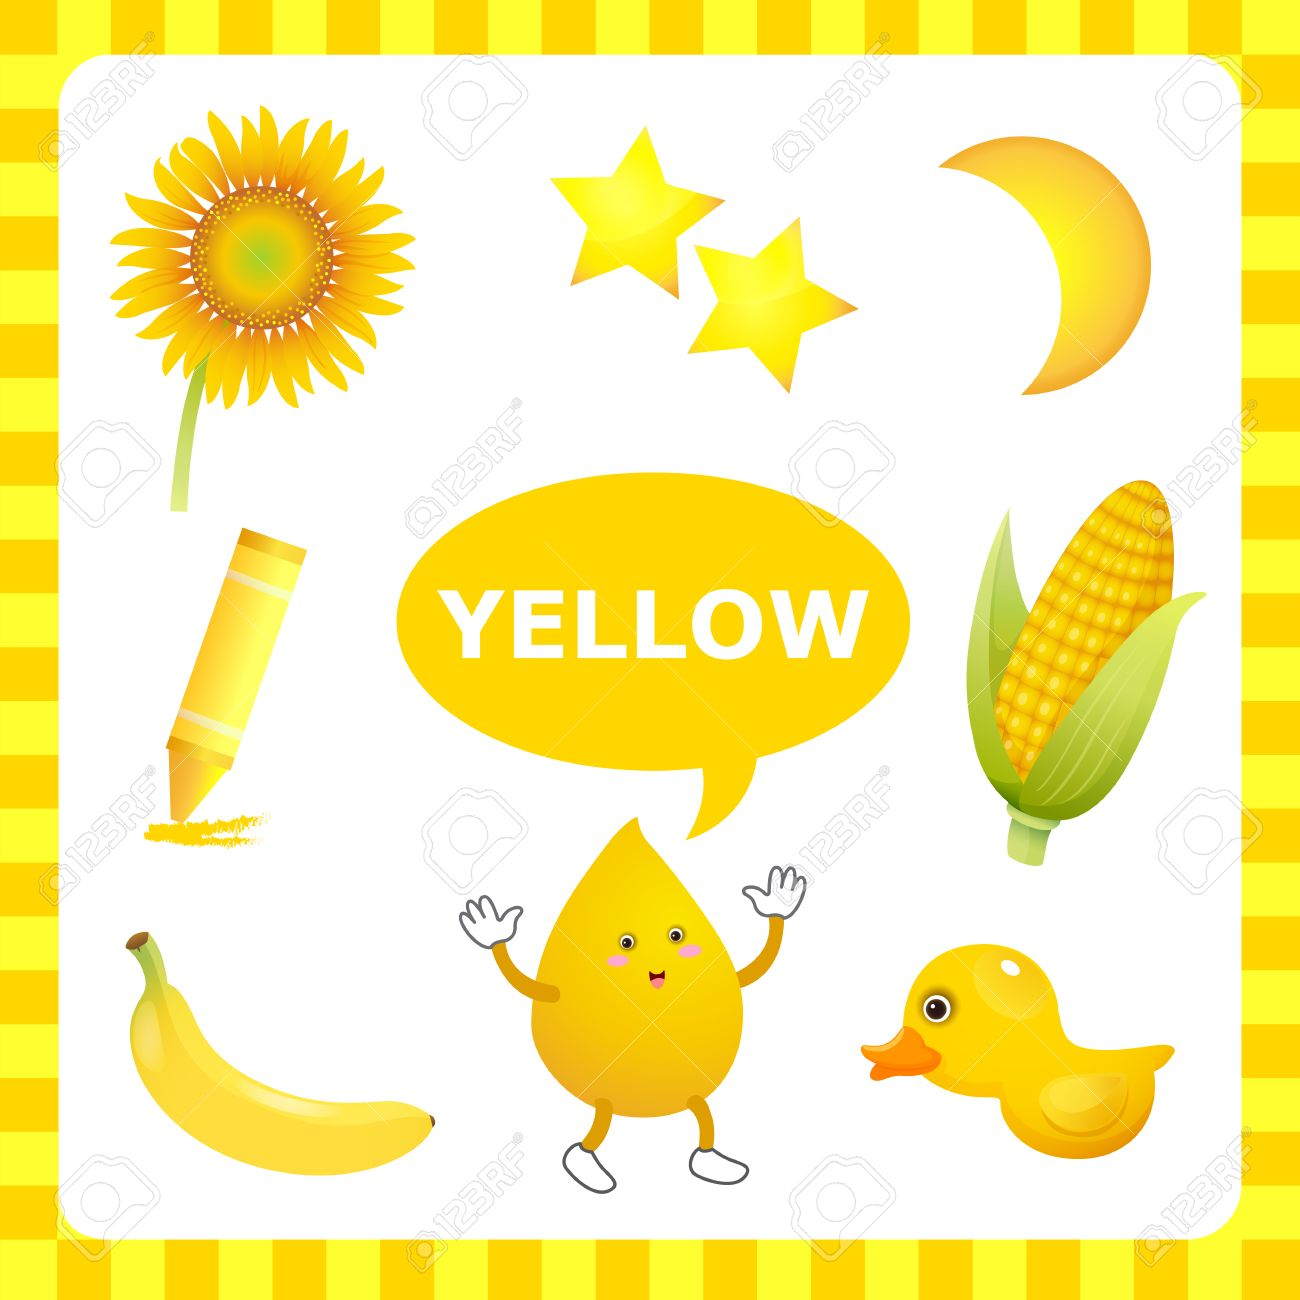 Learn The Color Yellow things that are yellow color.